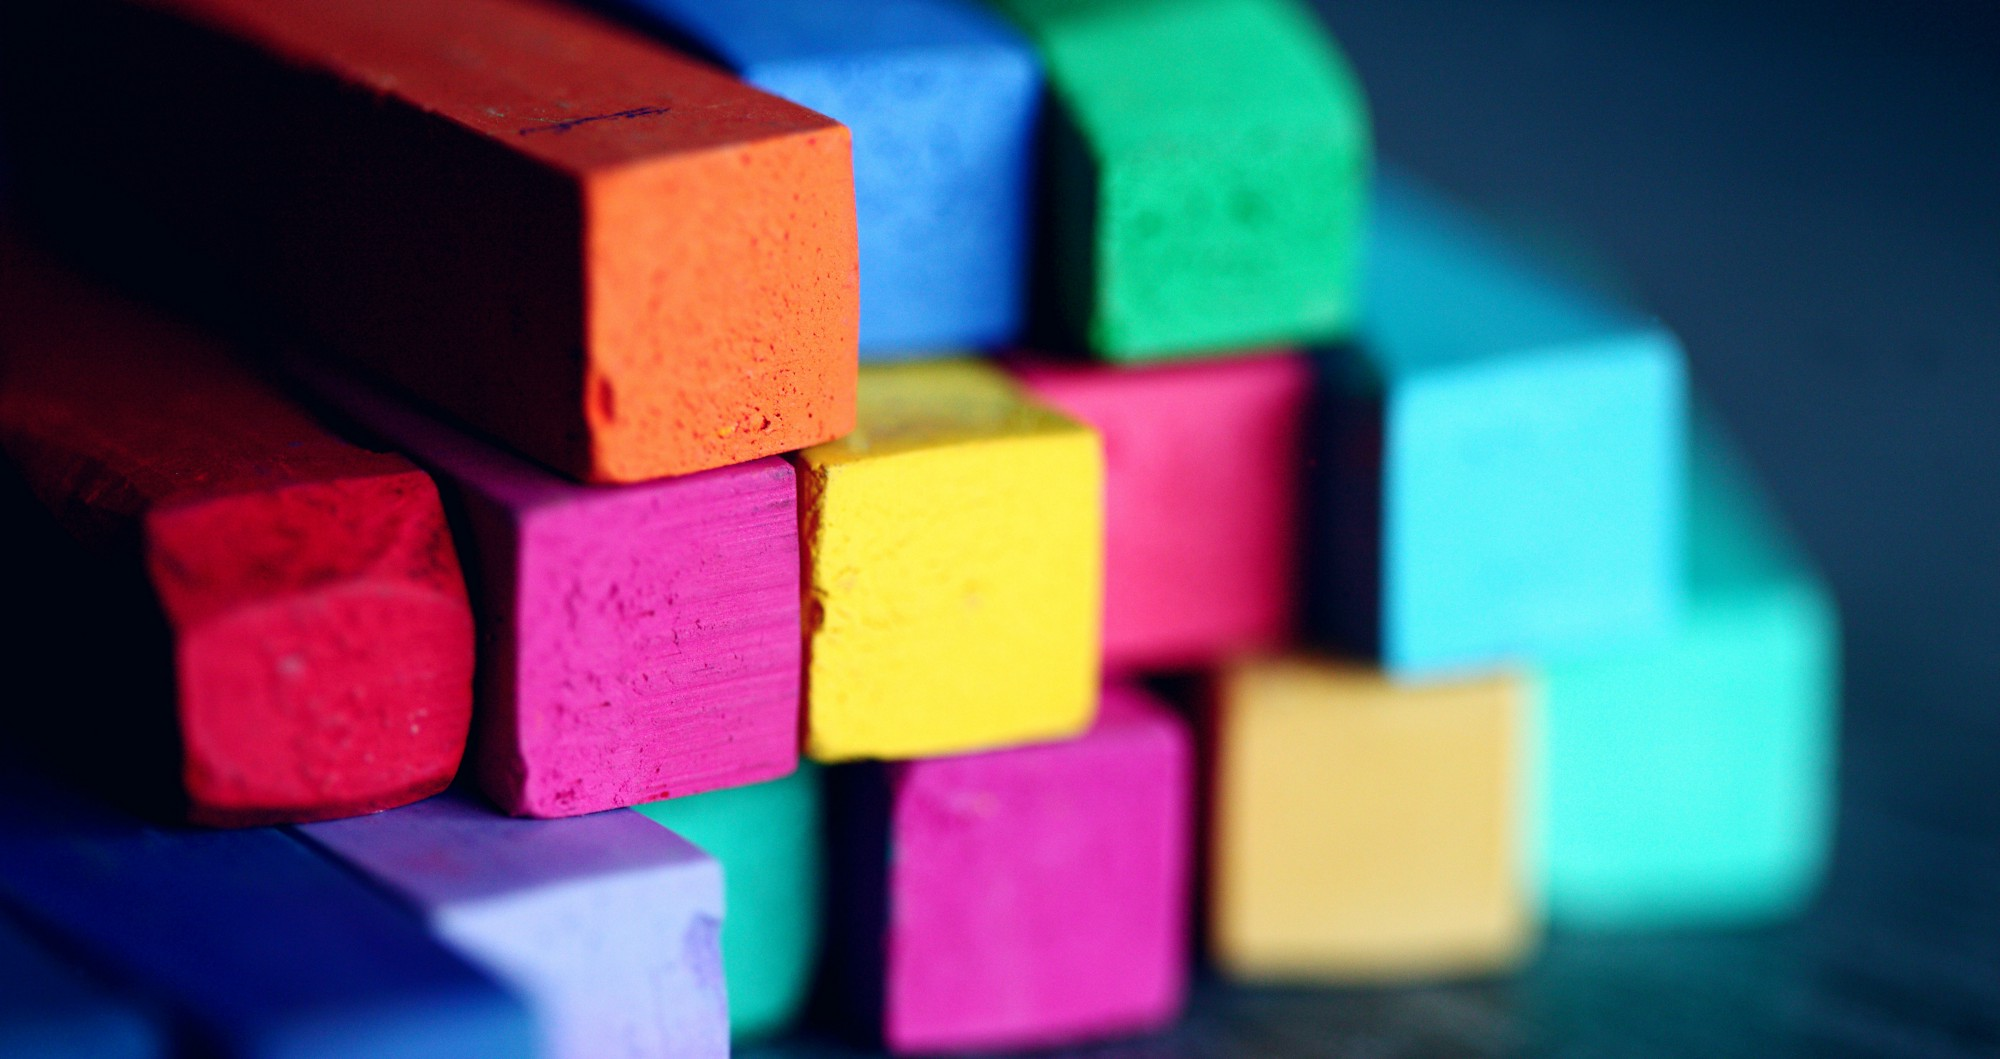 Brightly coloured building blocks stacked loosely on top of each other.